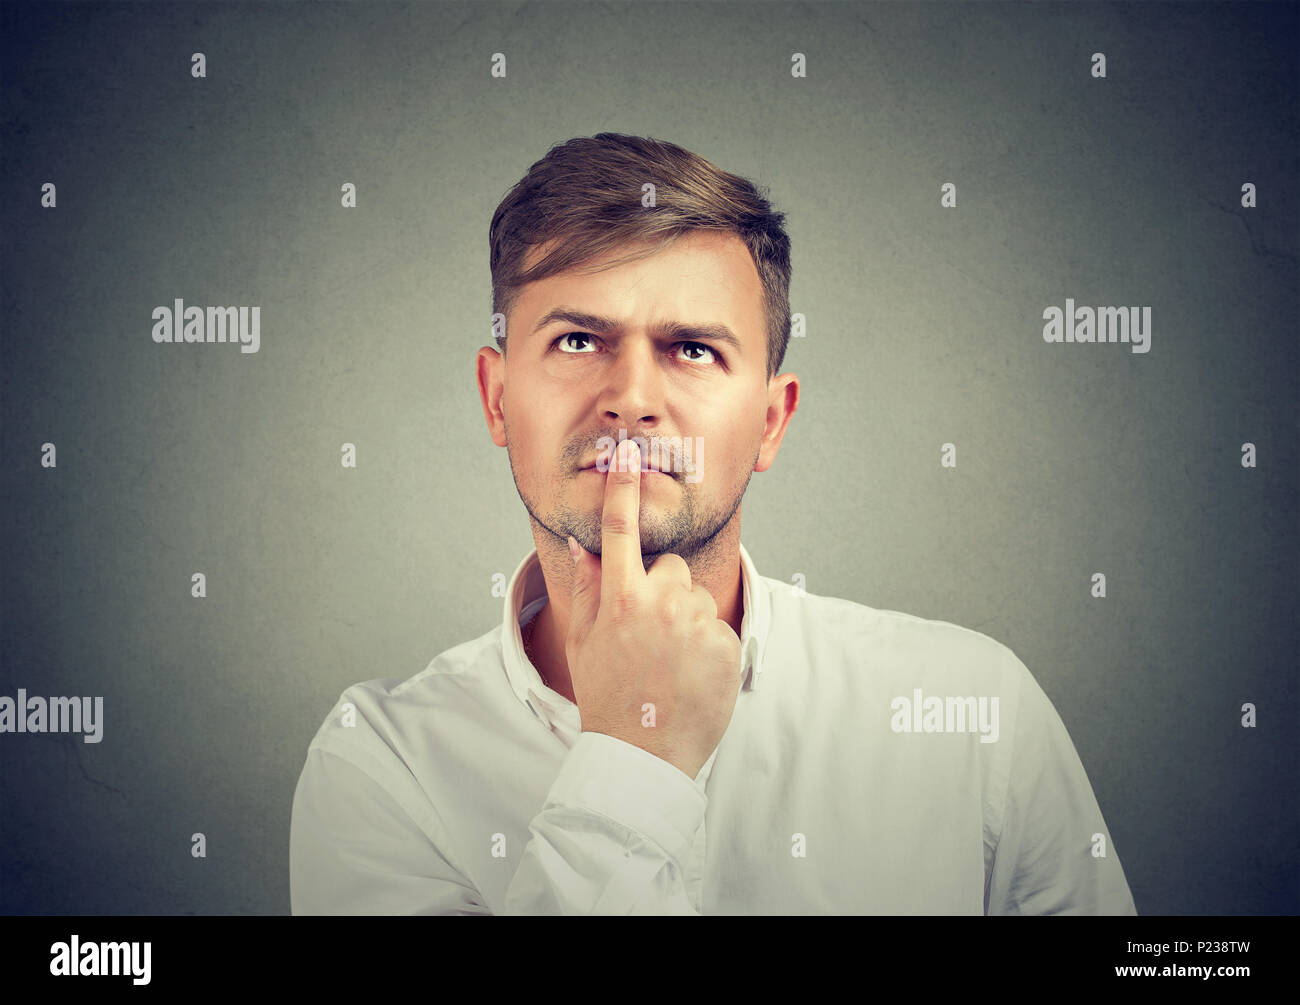 Handsome casual man in white shirt touching lips with finger and thinking on problem looking up. - Stock Image